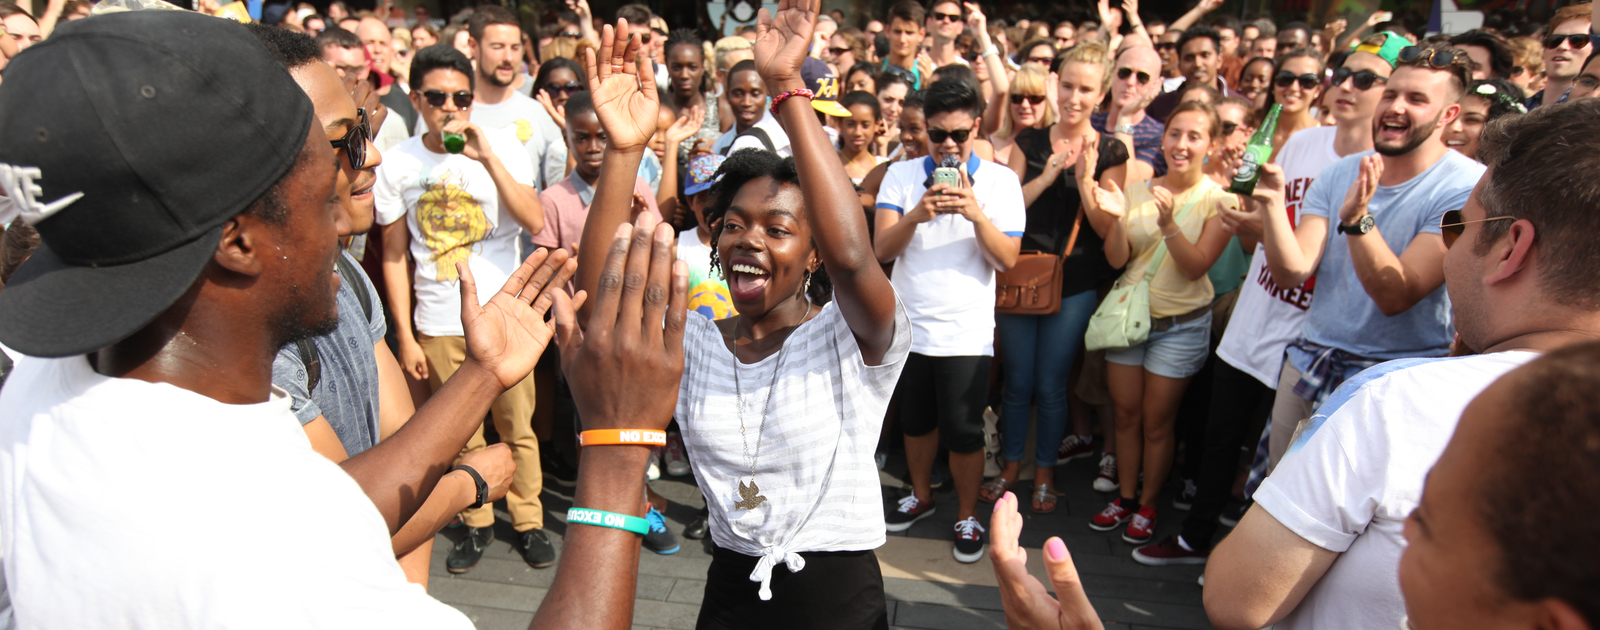 Photo of people dancing on Festival Terrace at Southbank Centre